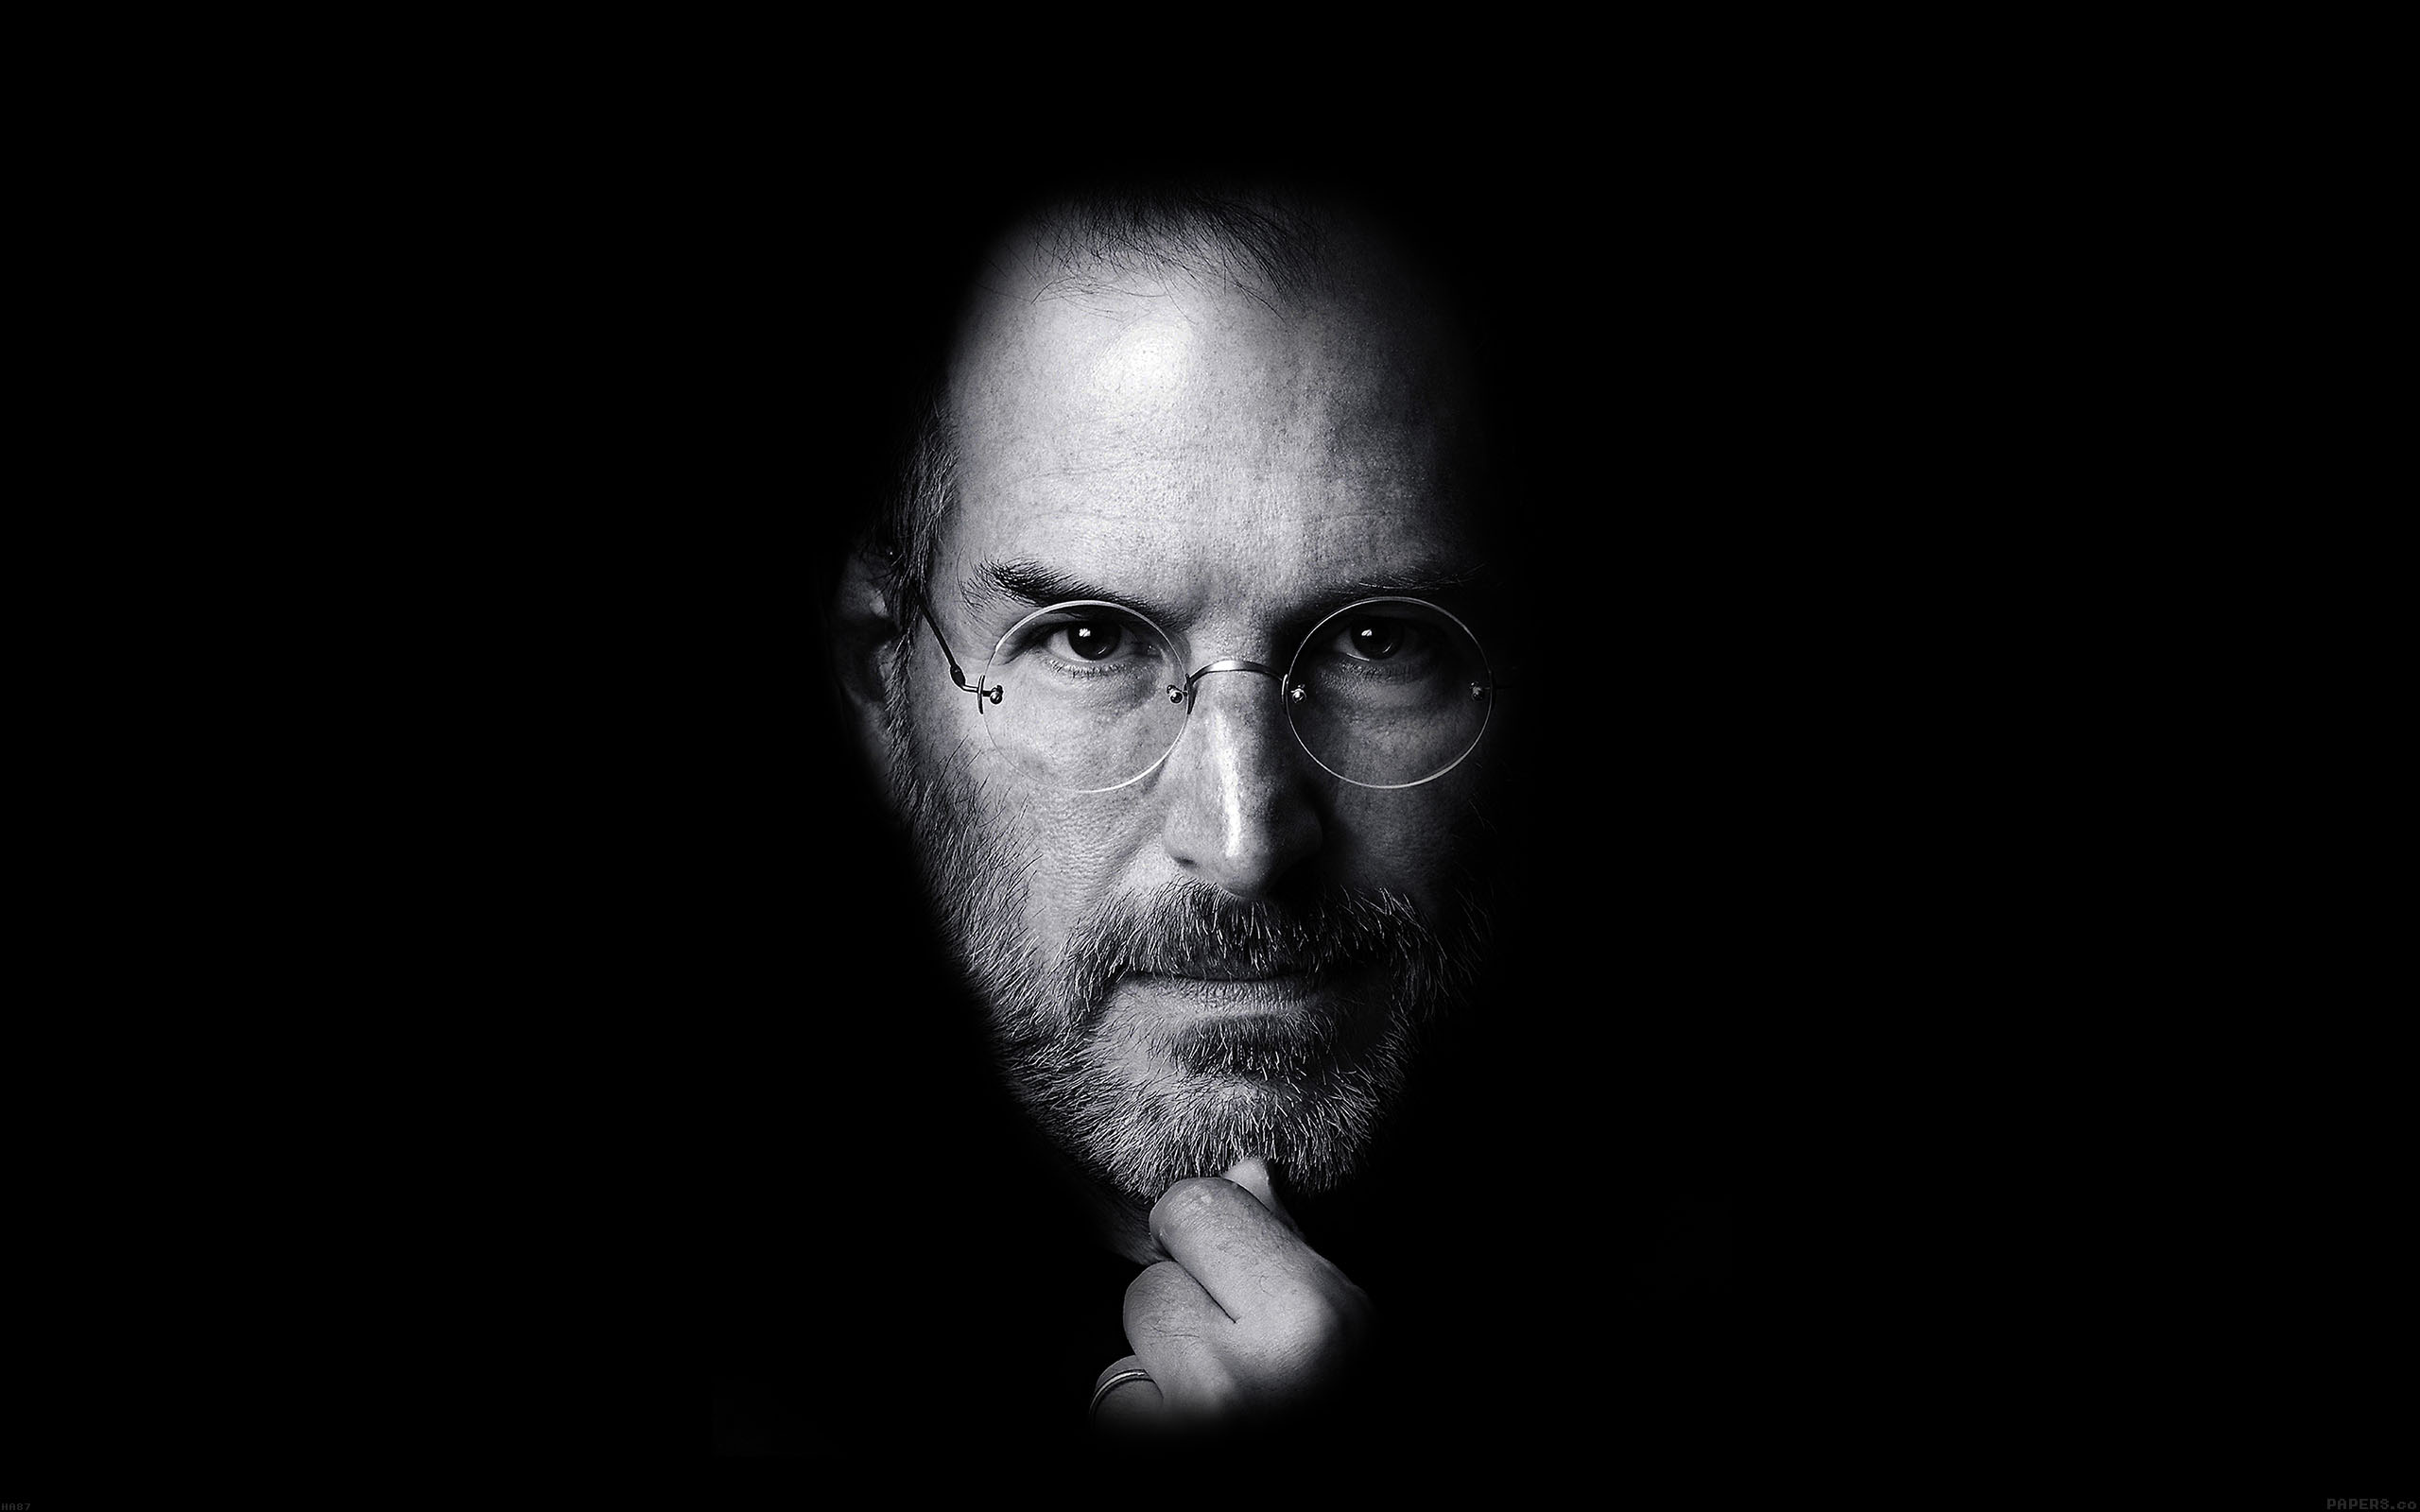 ha87-wallpaper-steve-jobs-face-apple - Papers.co